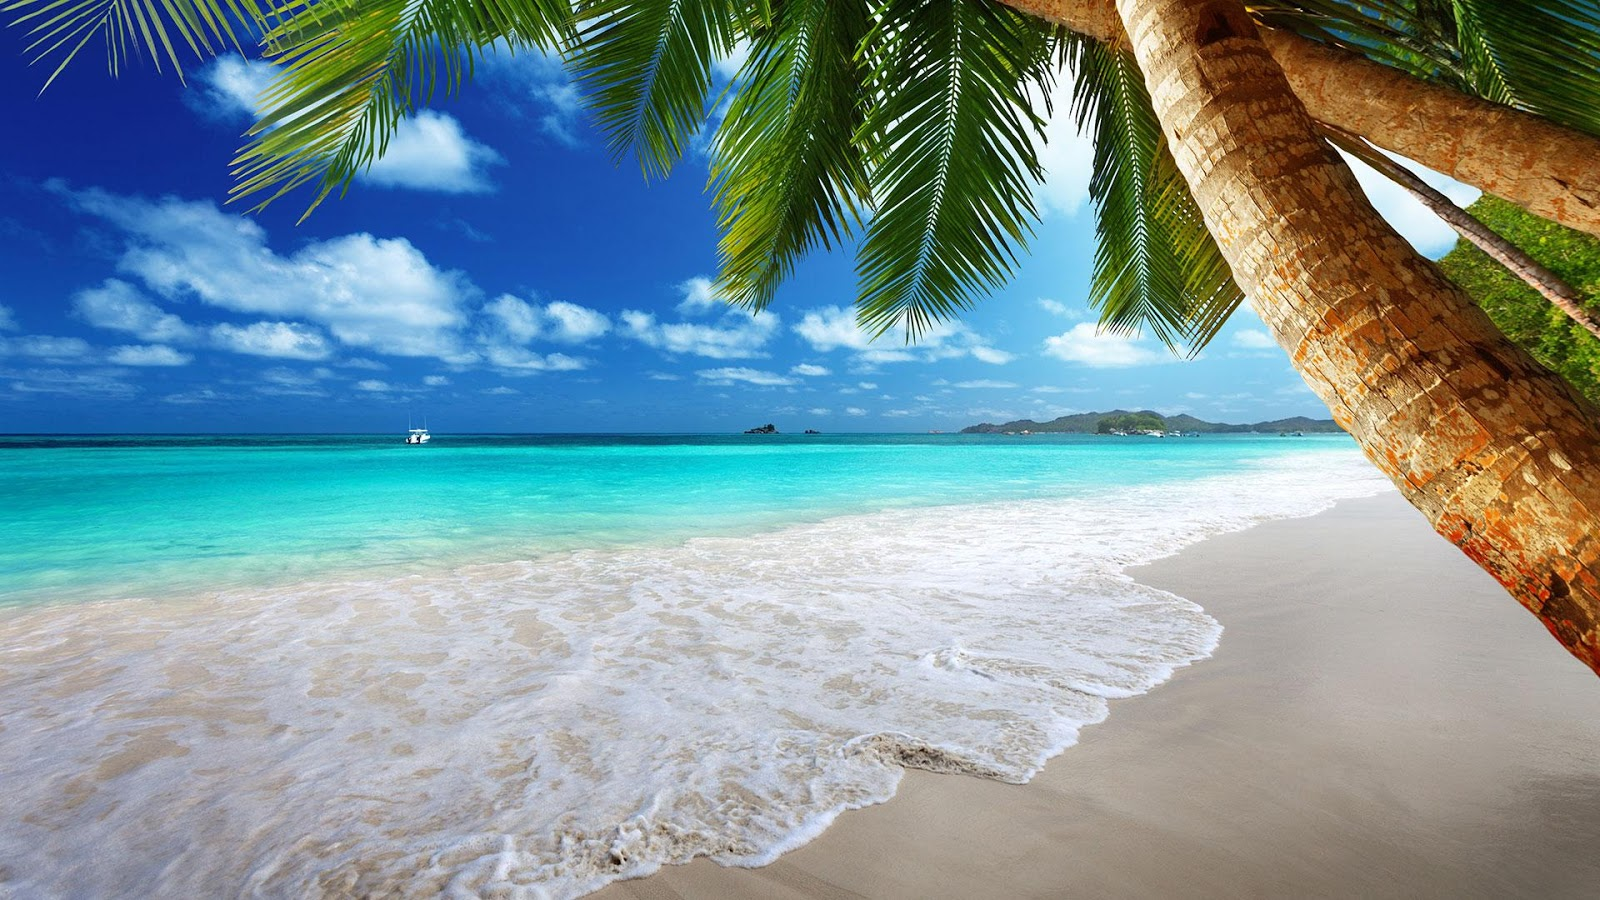 beach images and exotic holiday destinations here is the new beach 1600x900